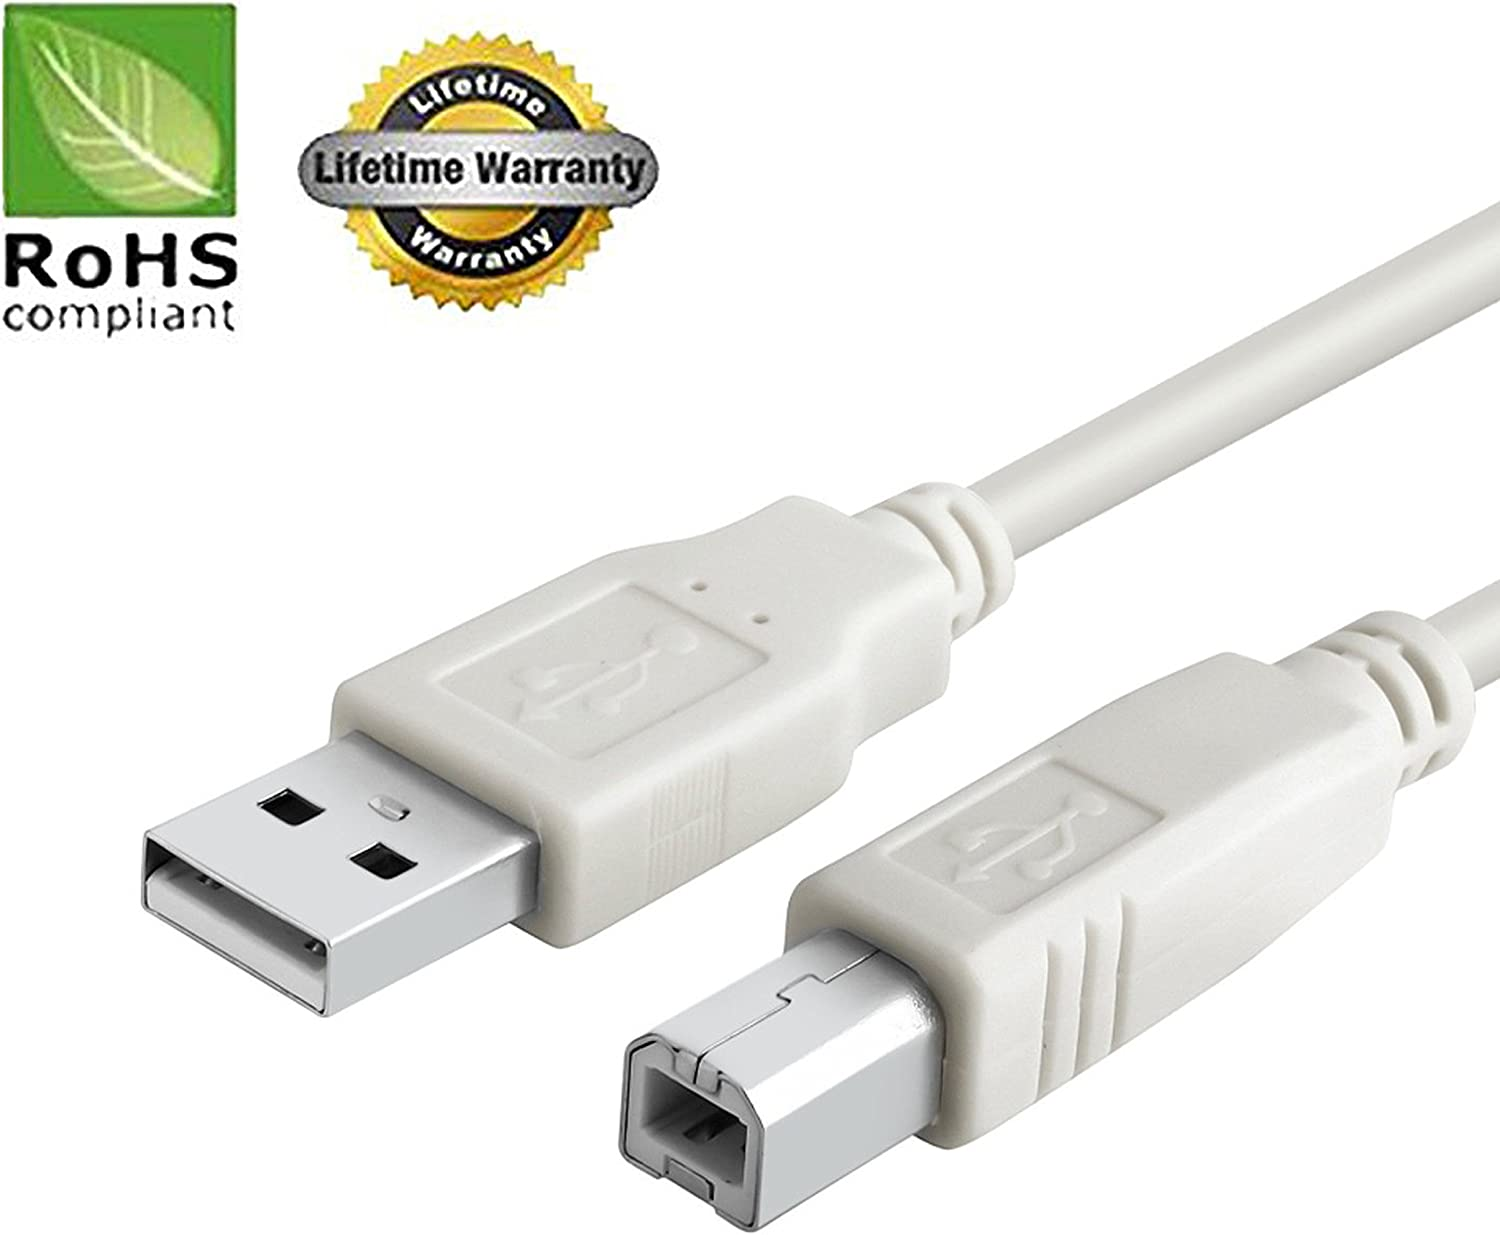 - 3 FT//10 PACK//IVORY Huetron TM USB 2.0 Cable Specific Models Only A-Male to B-Male for Acom Data External Subsystems Hard Drive PC Sync